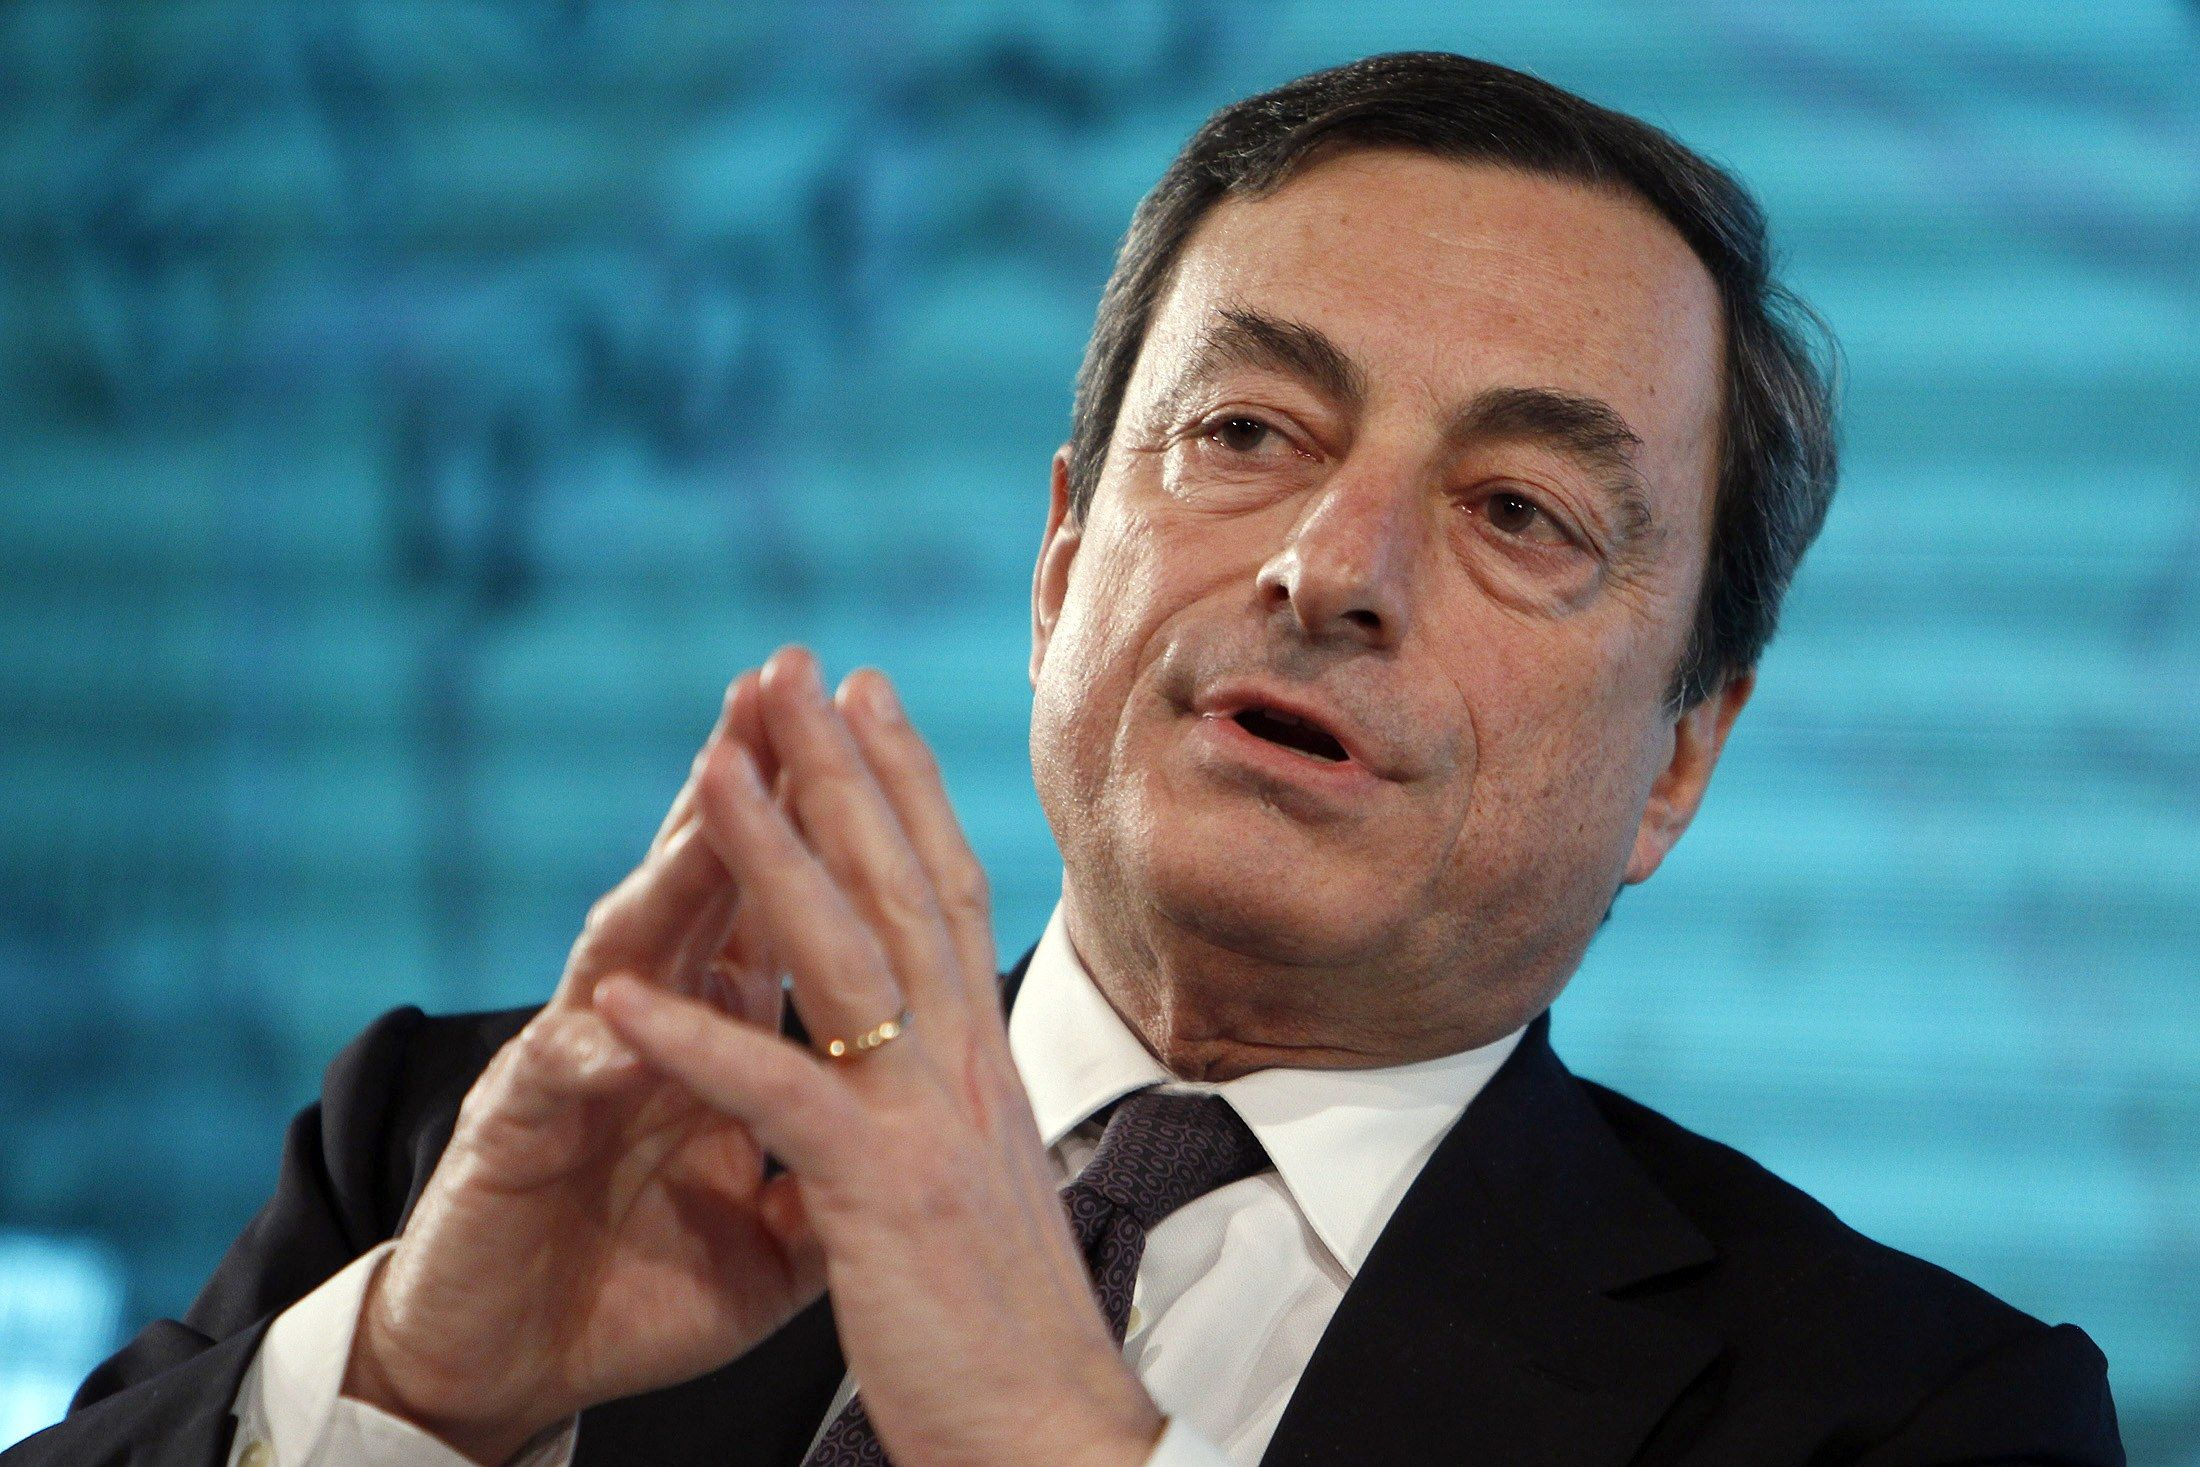 ECB Buys Record Amount of Debt as QE Frontloaded Before Holidays